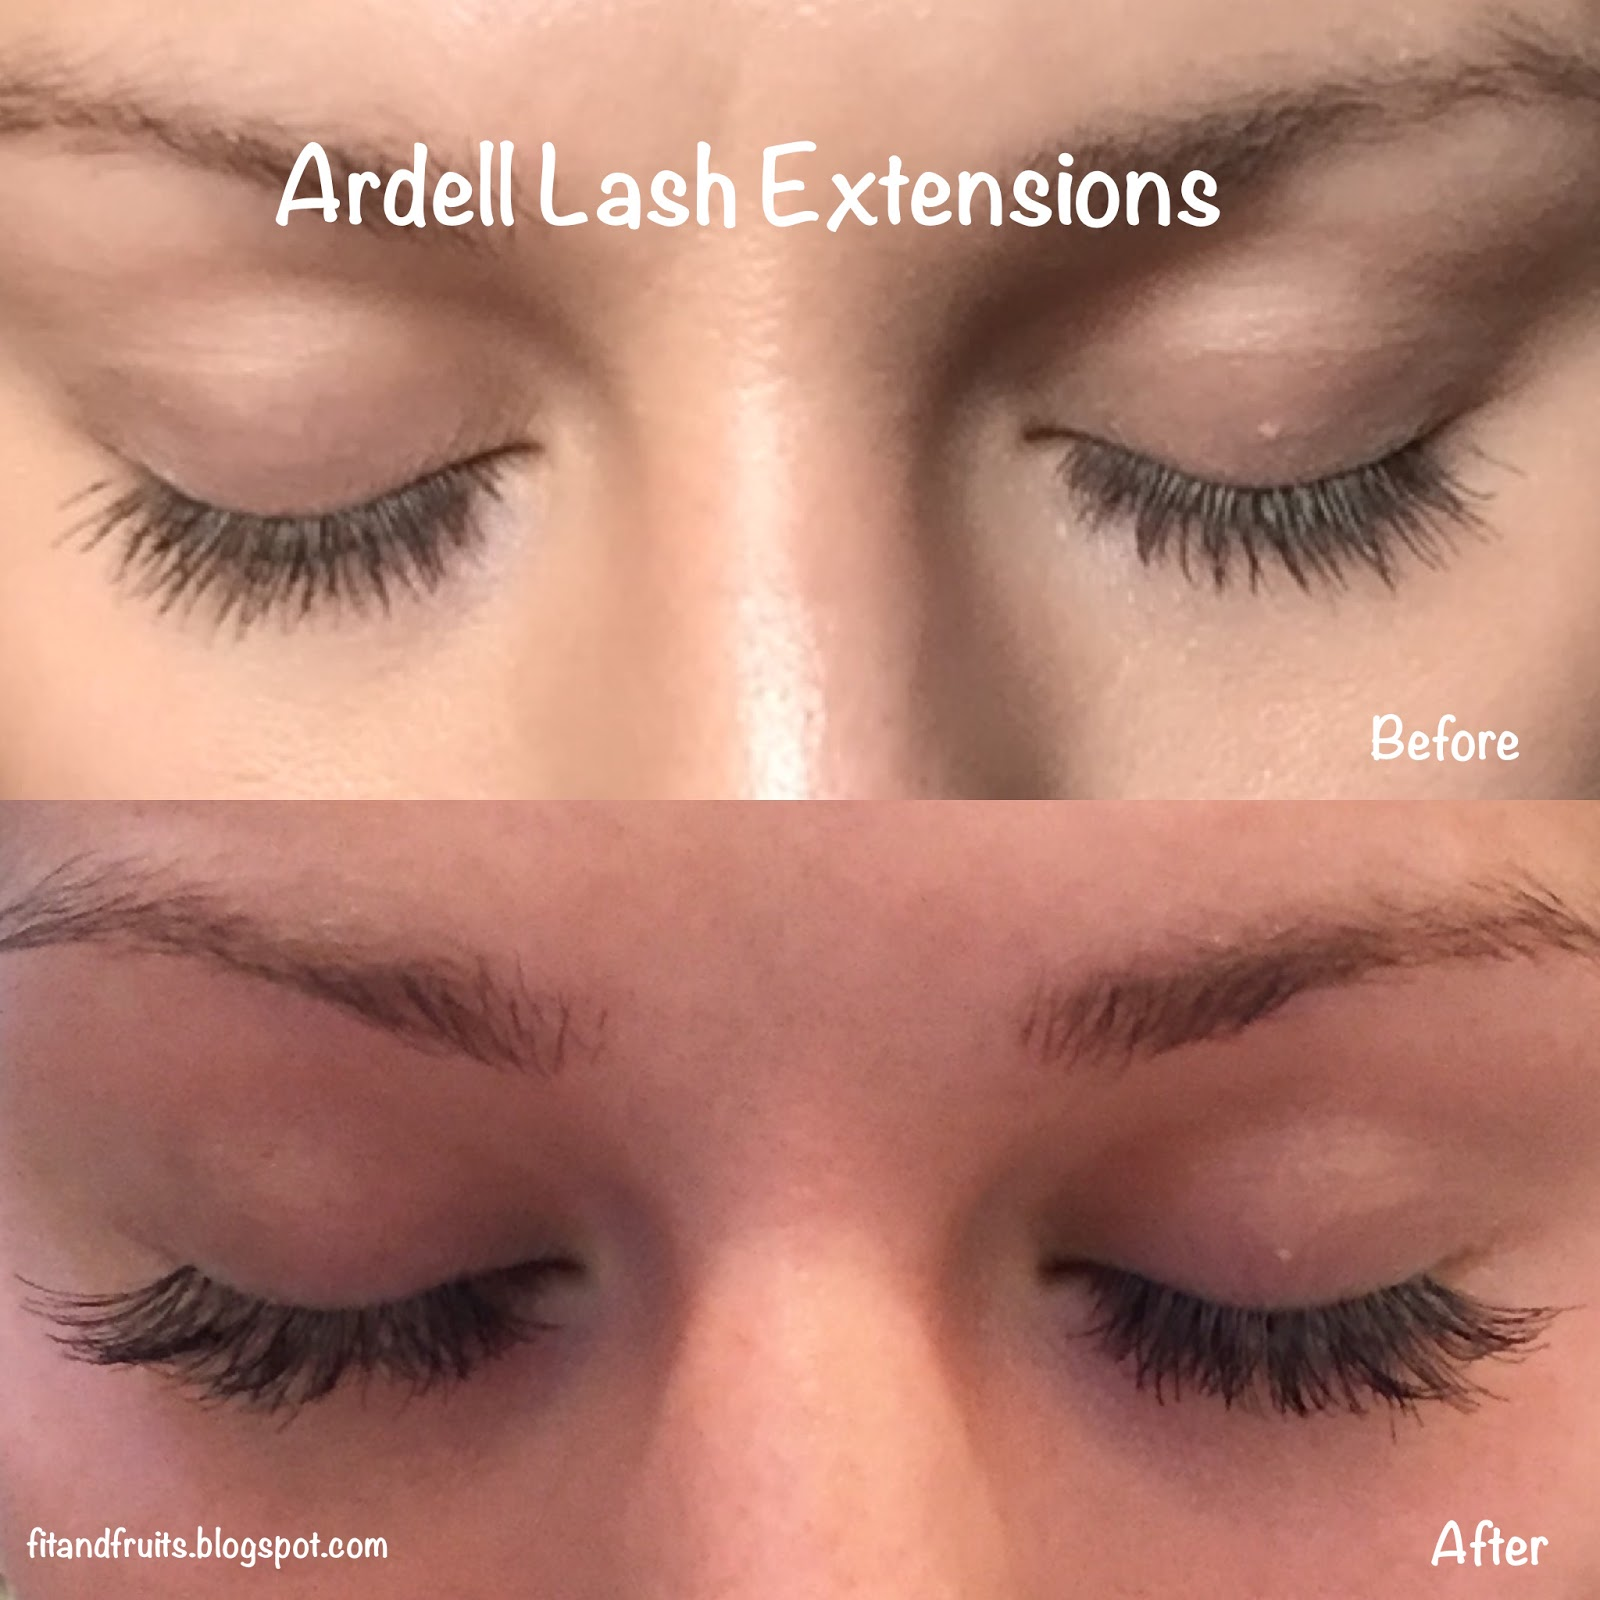 Ardell Lash Extensions Review Horror Story